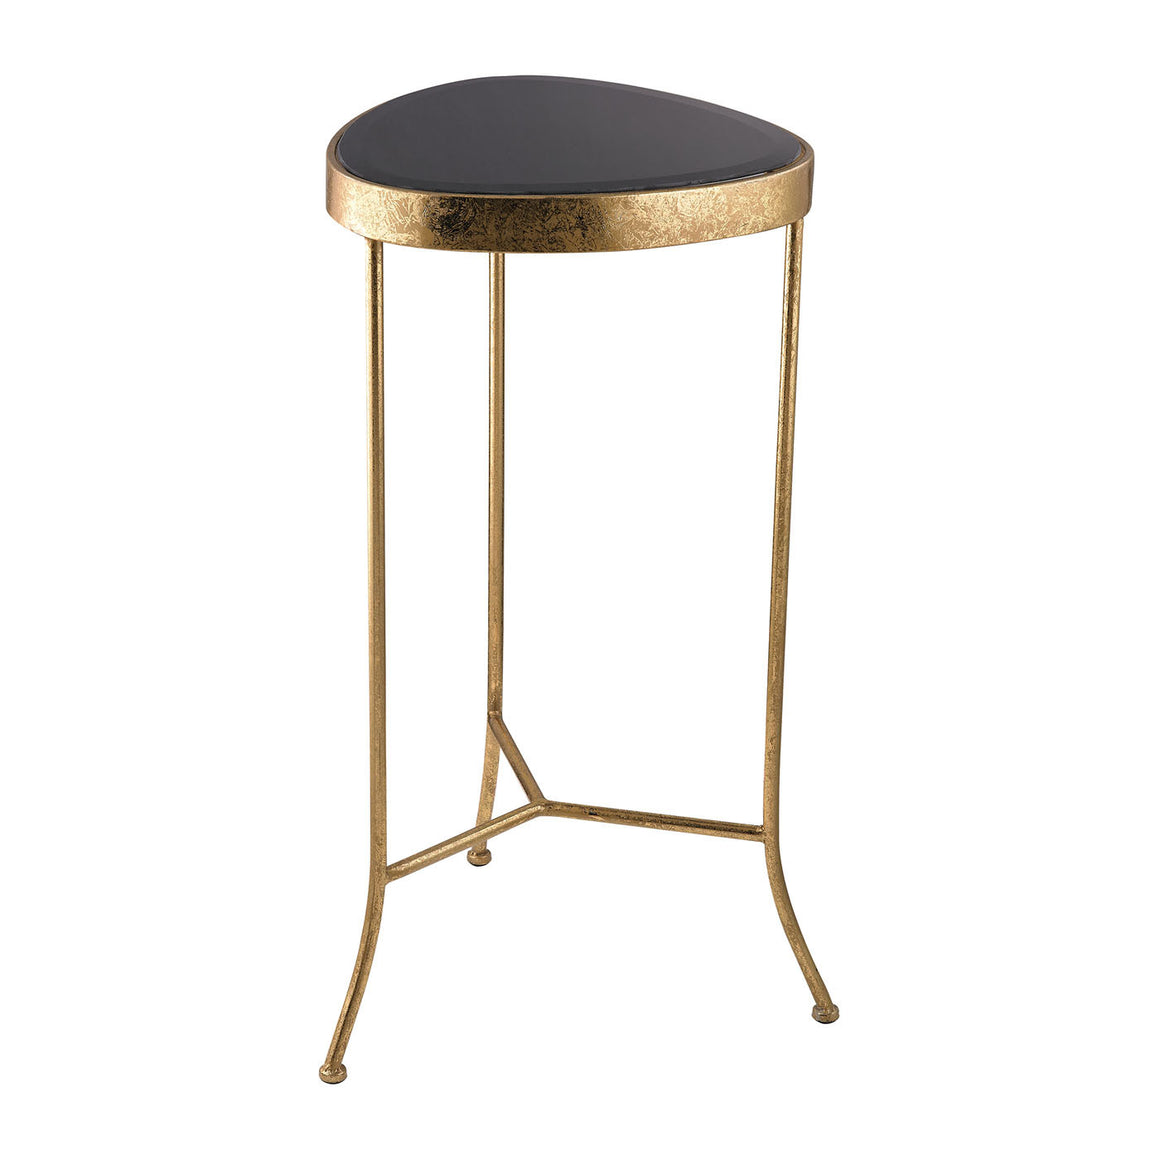 Black Onyx Cocktail Table 138-180 by Sterling